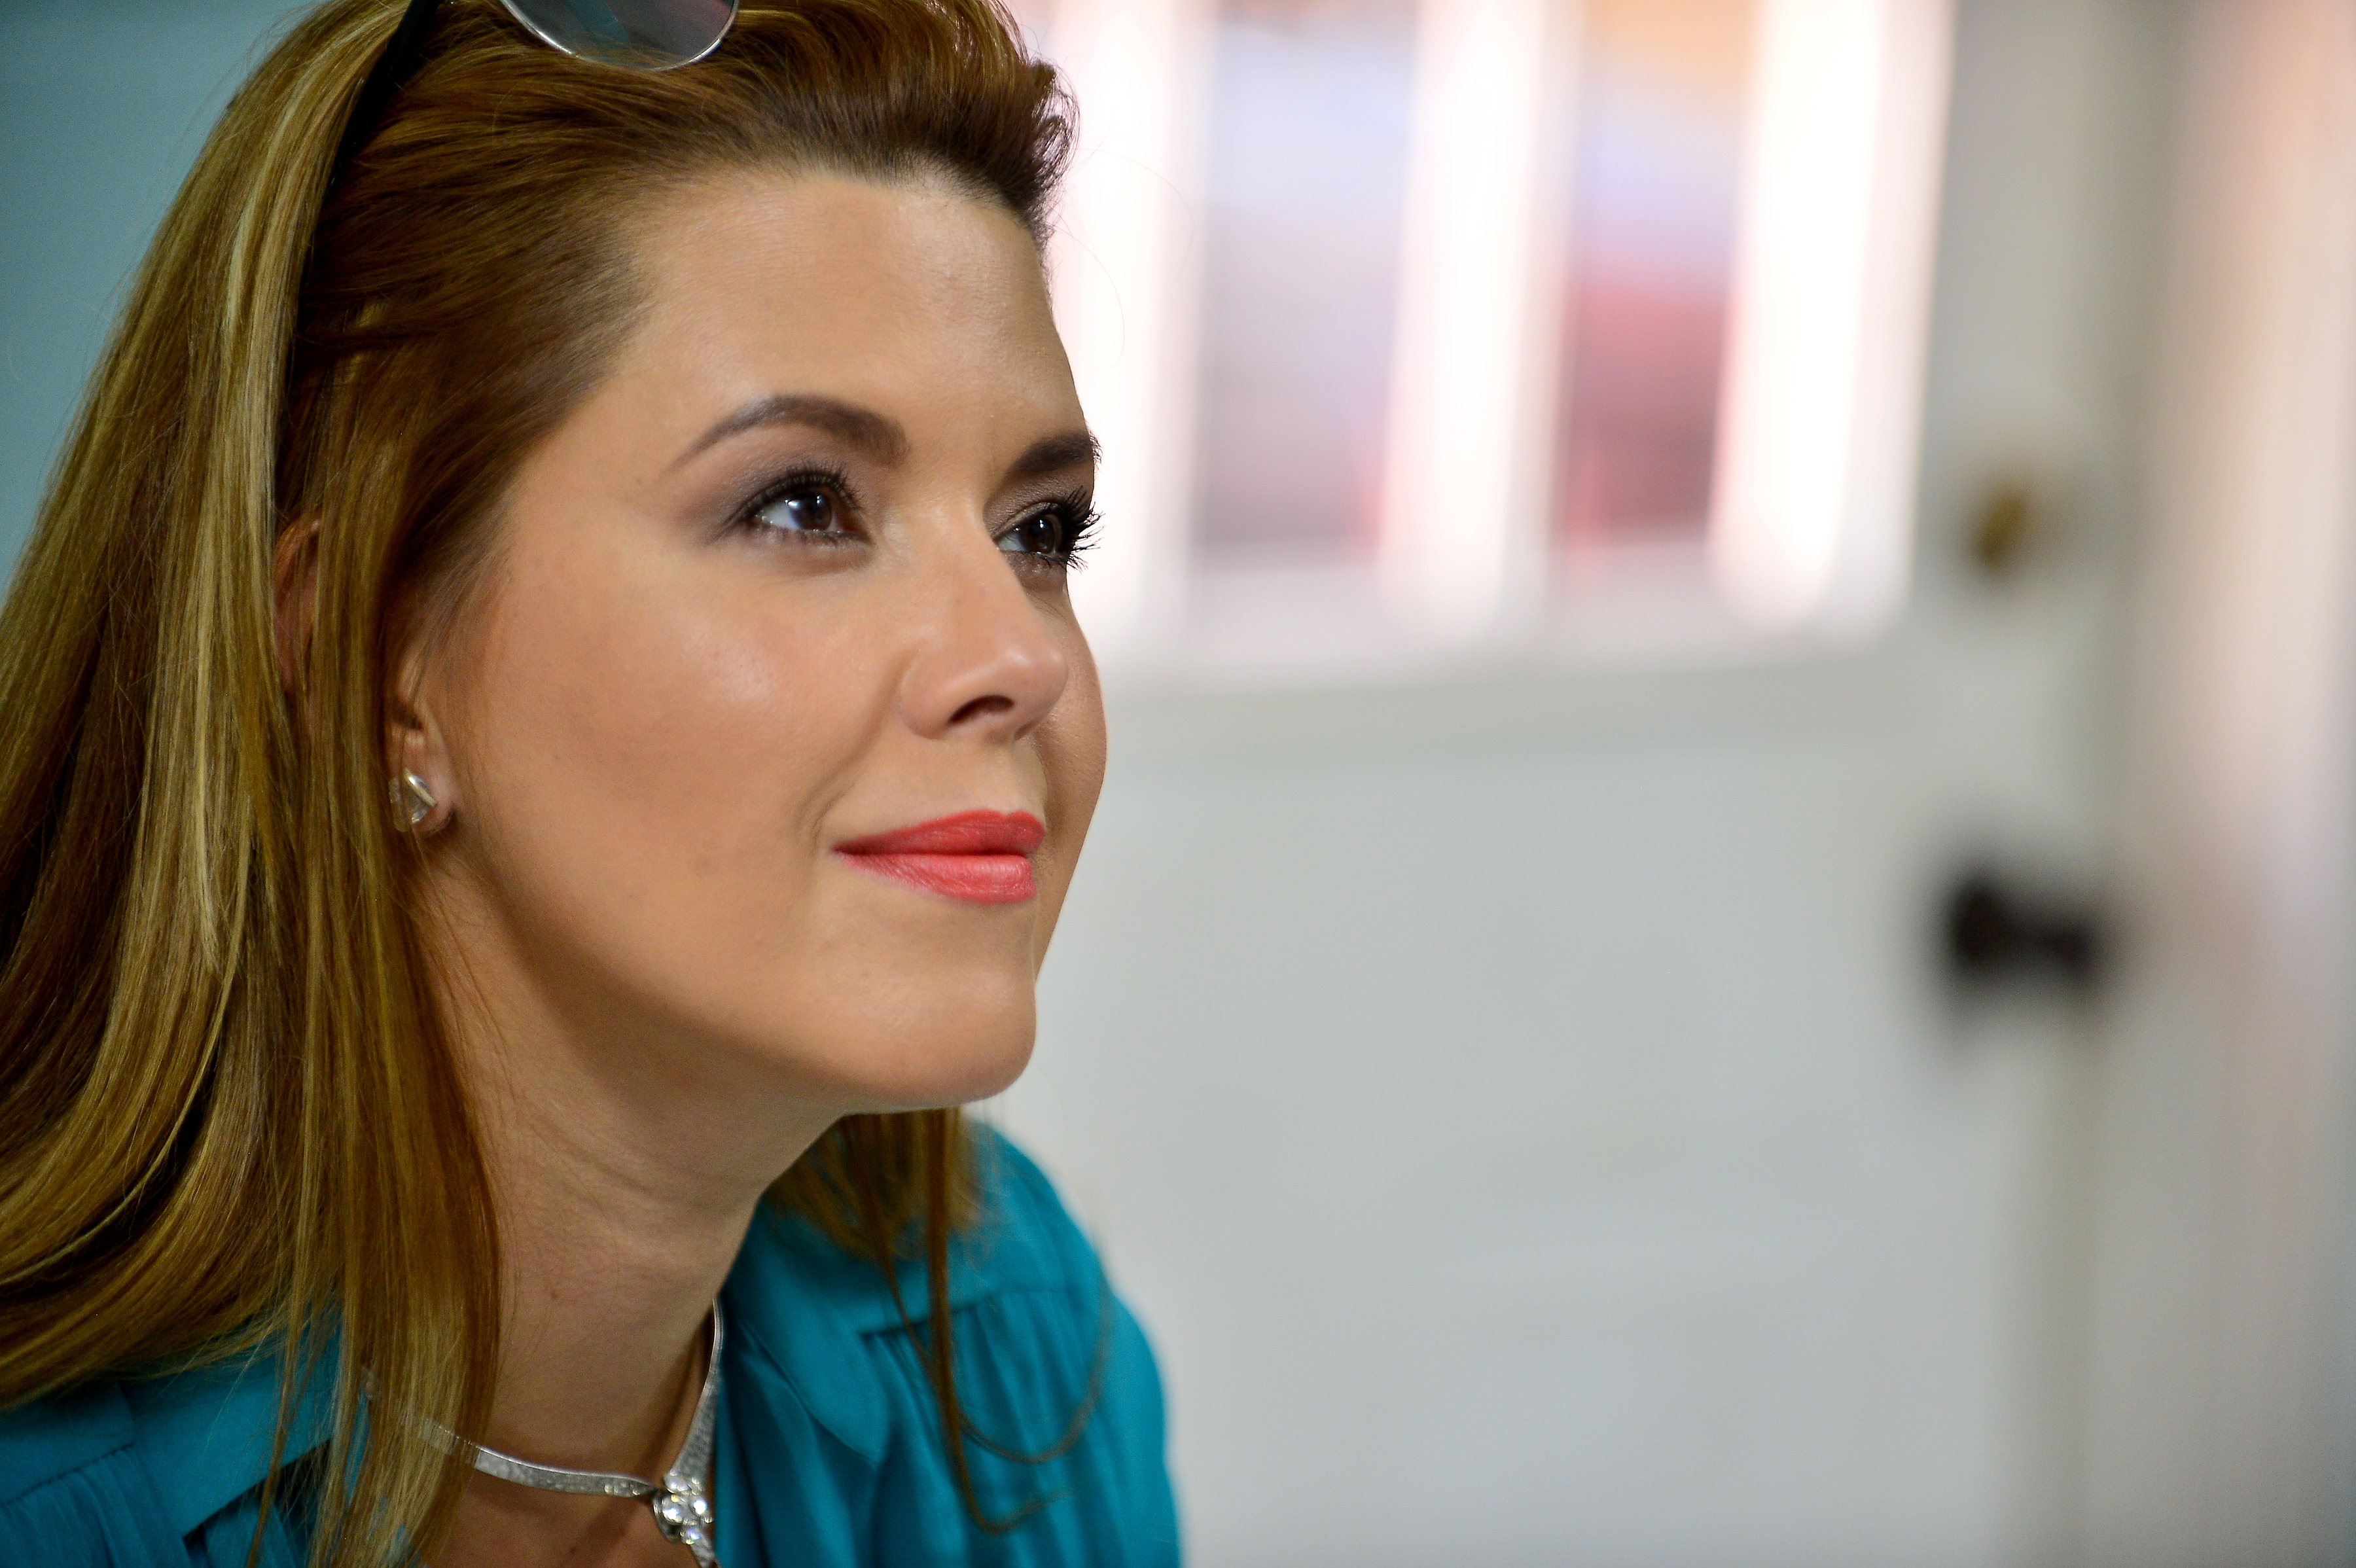 Actress and former Miss Universe Alicia Machado campaigns for Hillary Clinton in Miami, Fla., on Aug. 20, 2016.